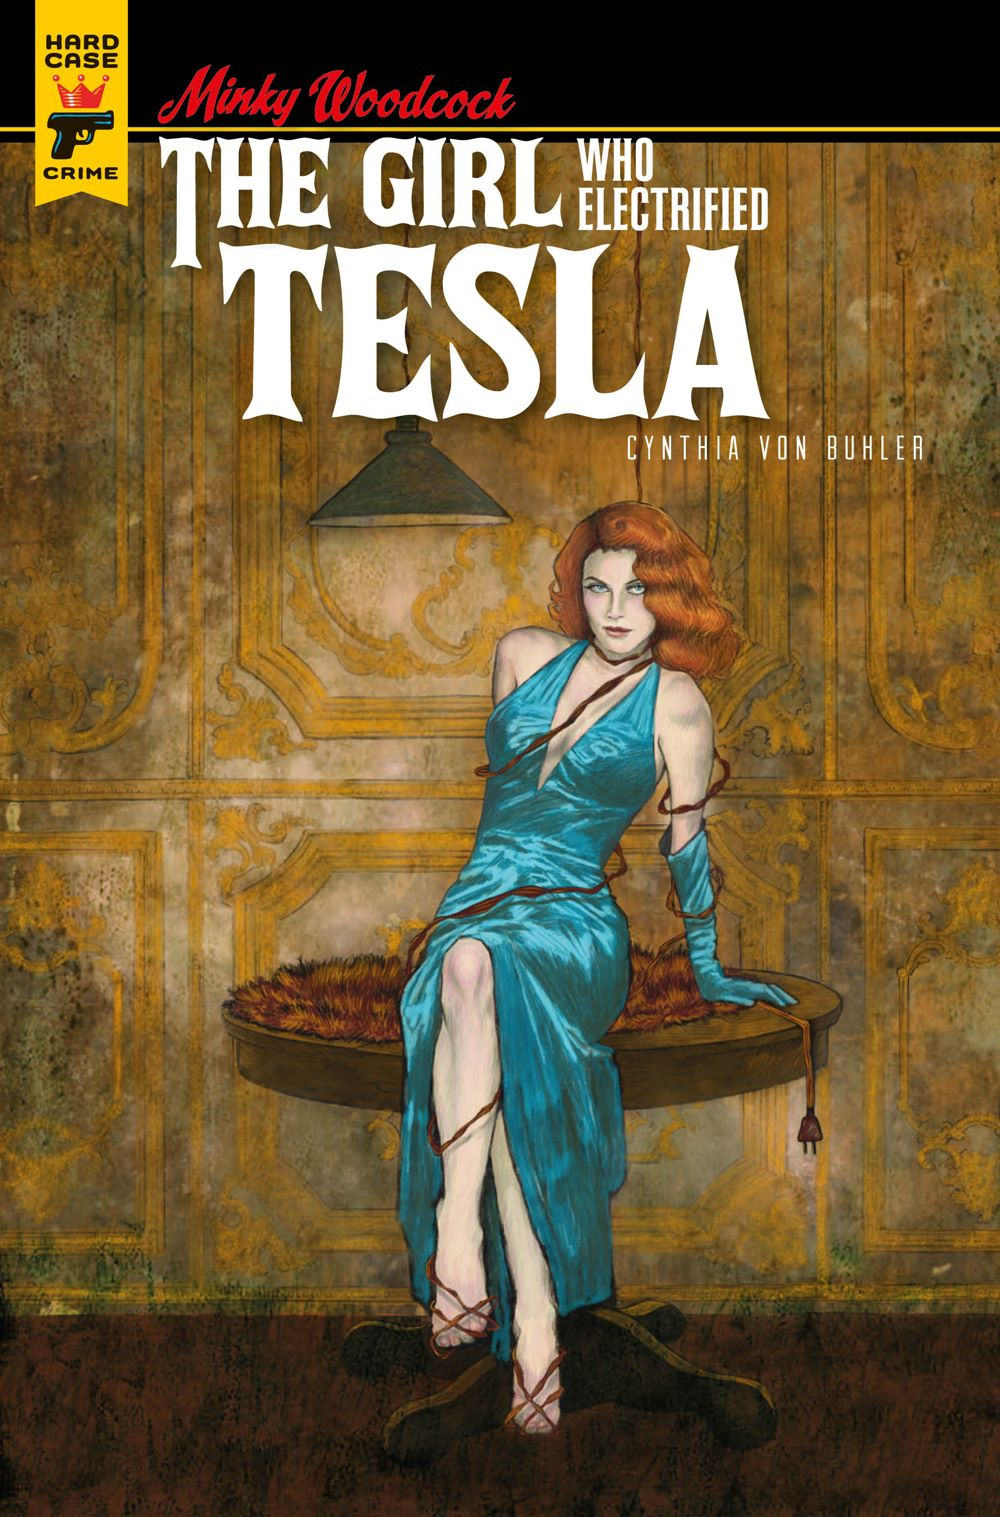 Minky-Woodcock-Cover-D-Cynthia-von-Buhler Minky Woodcock returns in THE GIRL WHO ELECTRIFIED TESLA